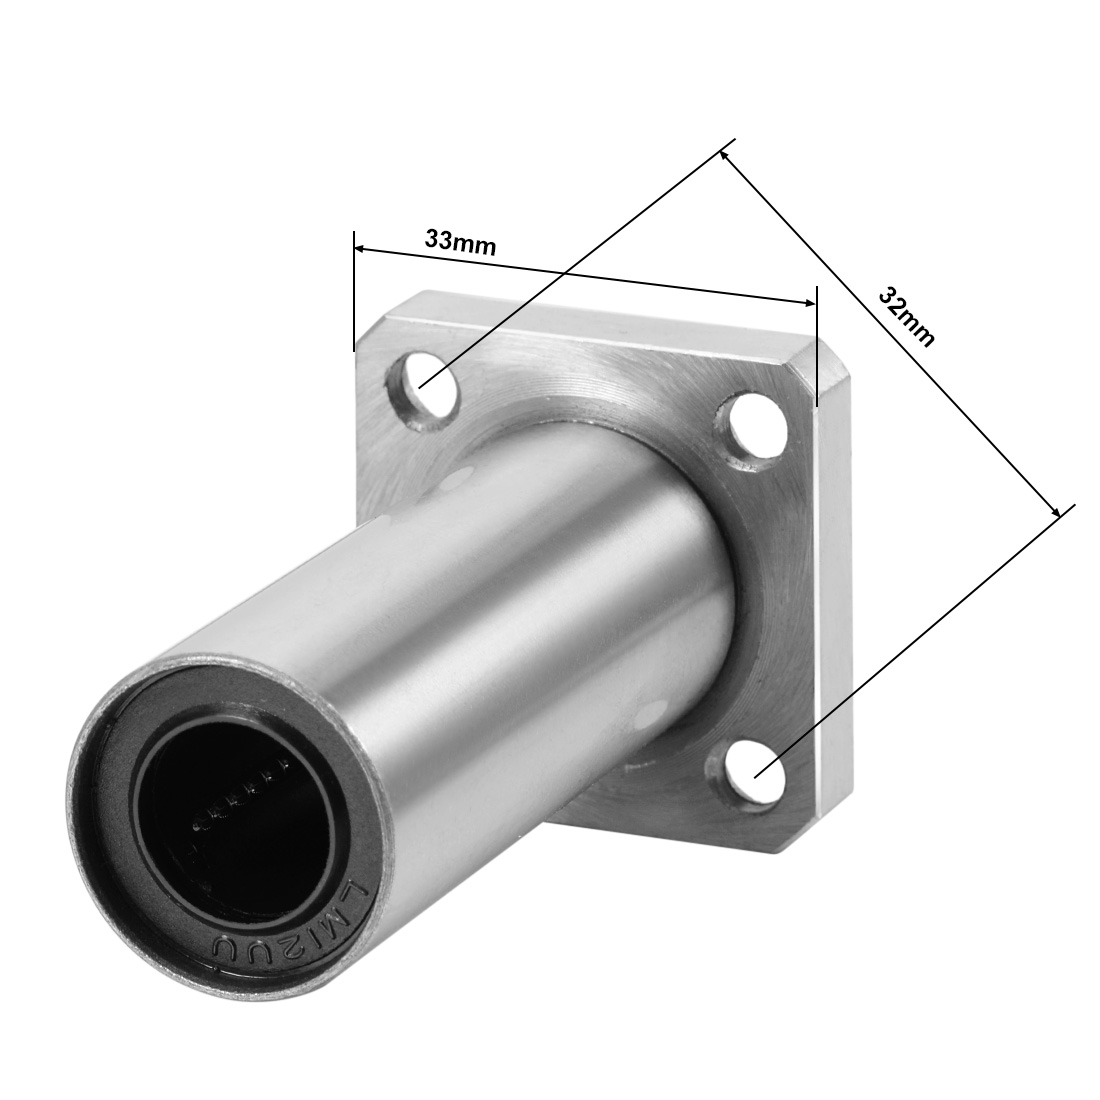 Extra Long Motion Bushing with Square Mount Hole Square Flange Linear Ball Bearings 6mm